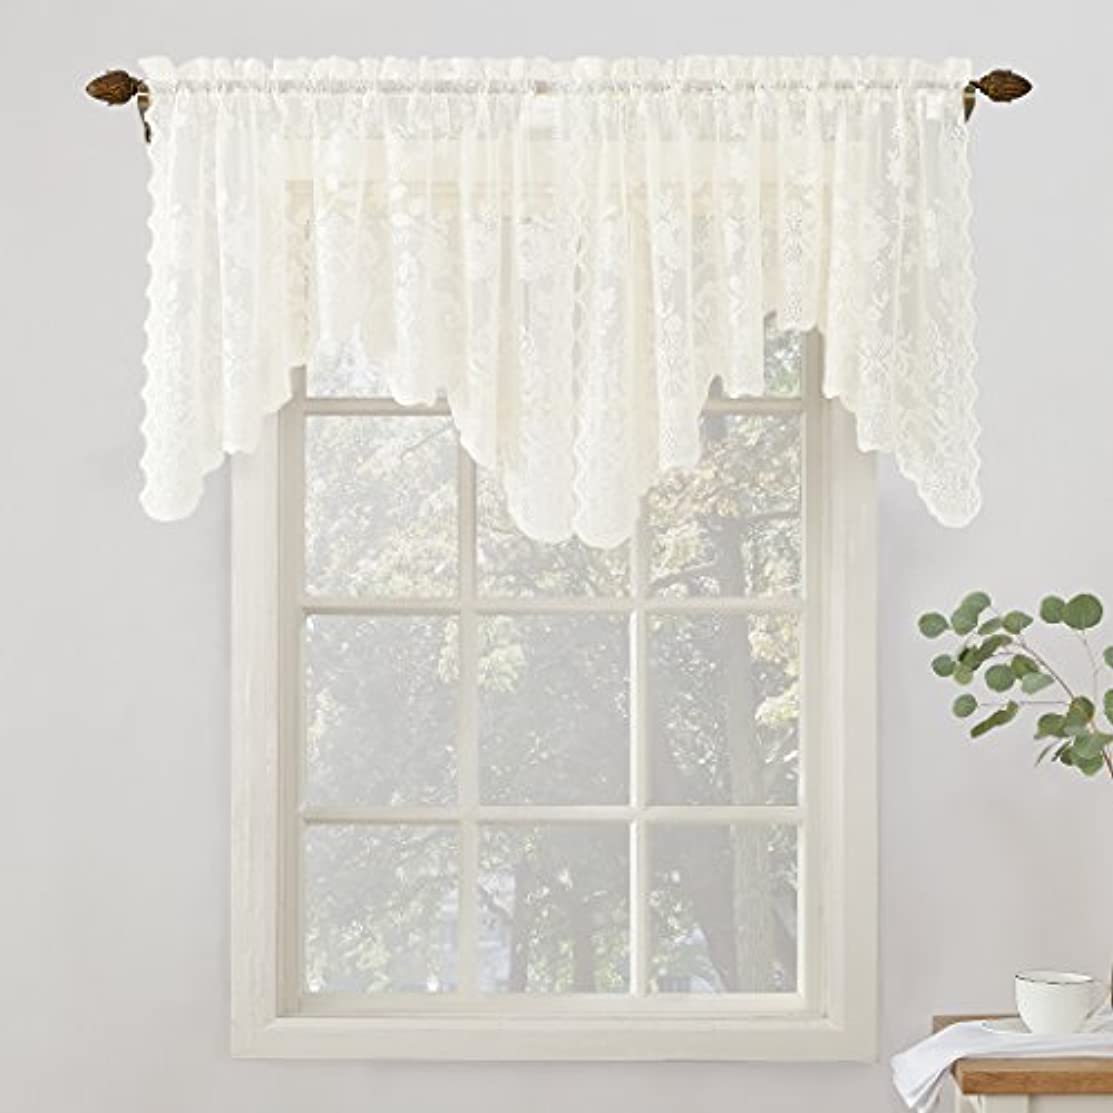 No. 918 Alison Floral Lace Sheer Rod Pocket Valance Curtain Panel, 58